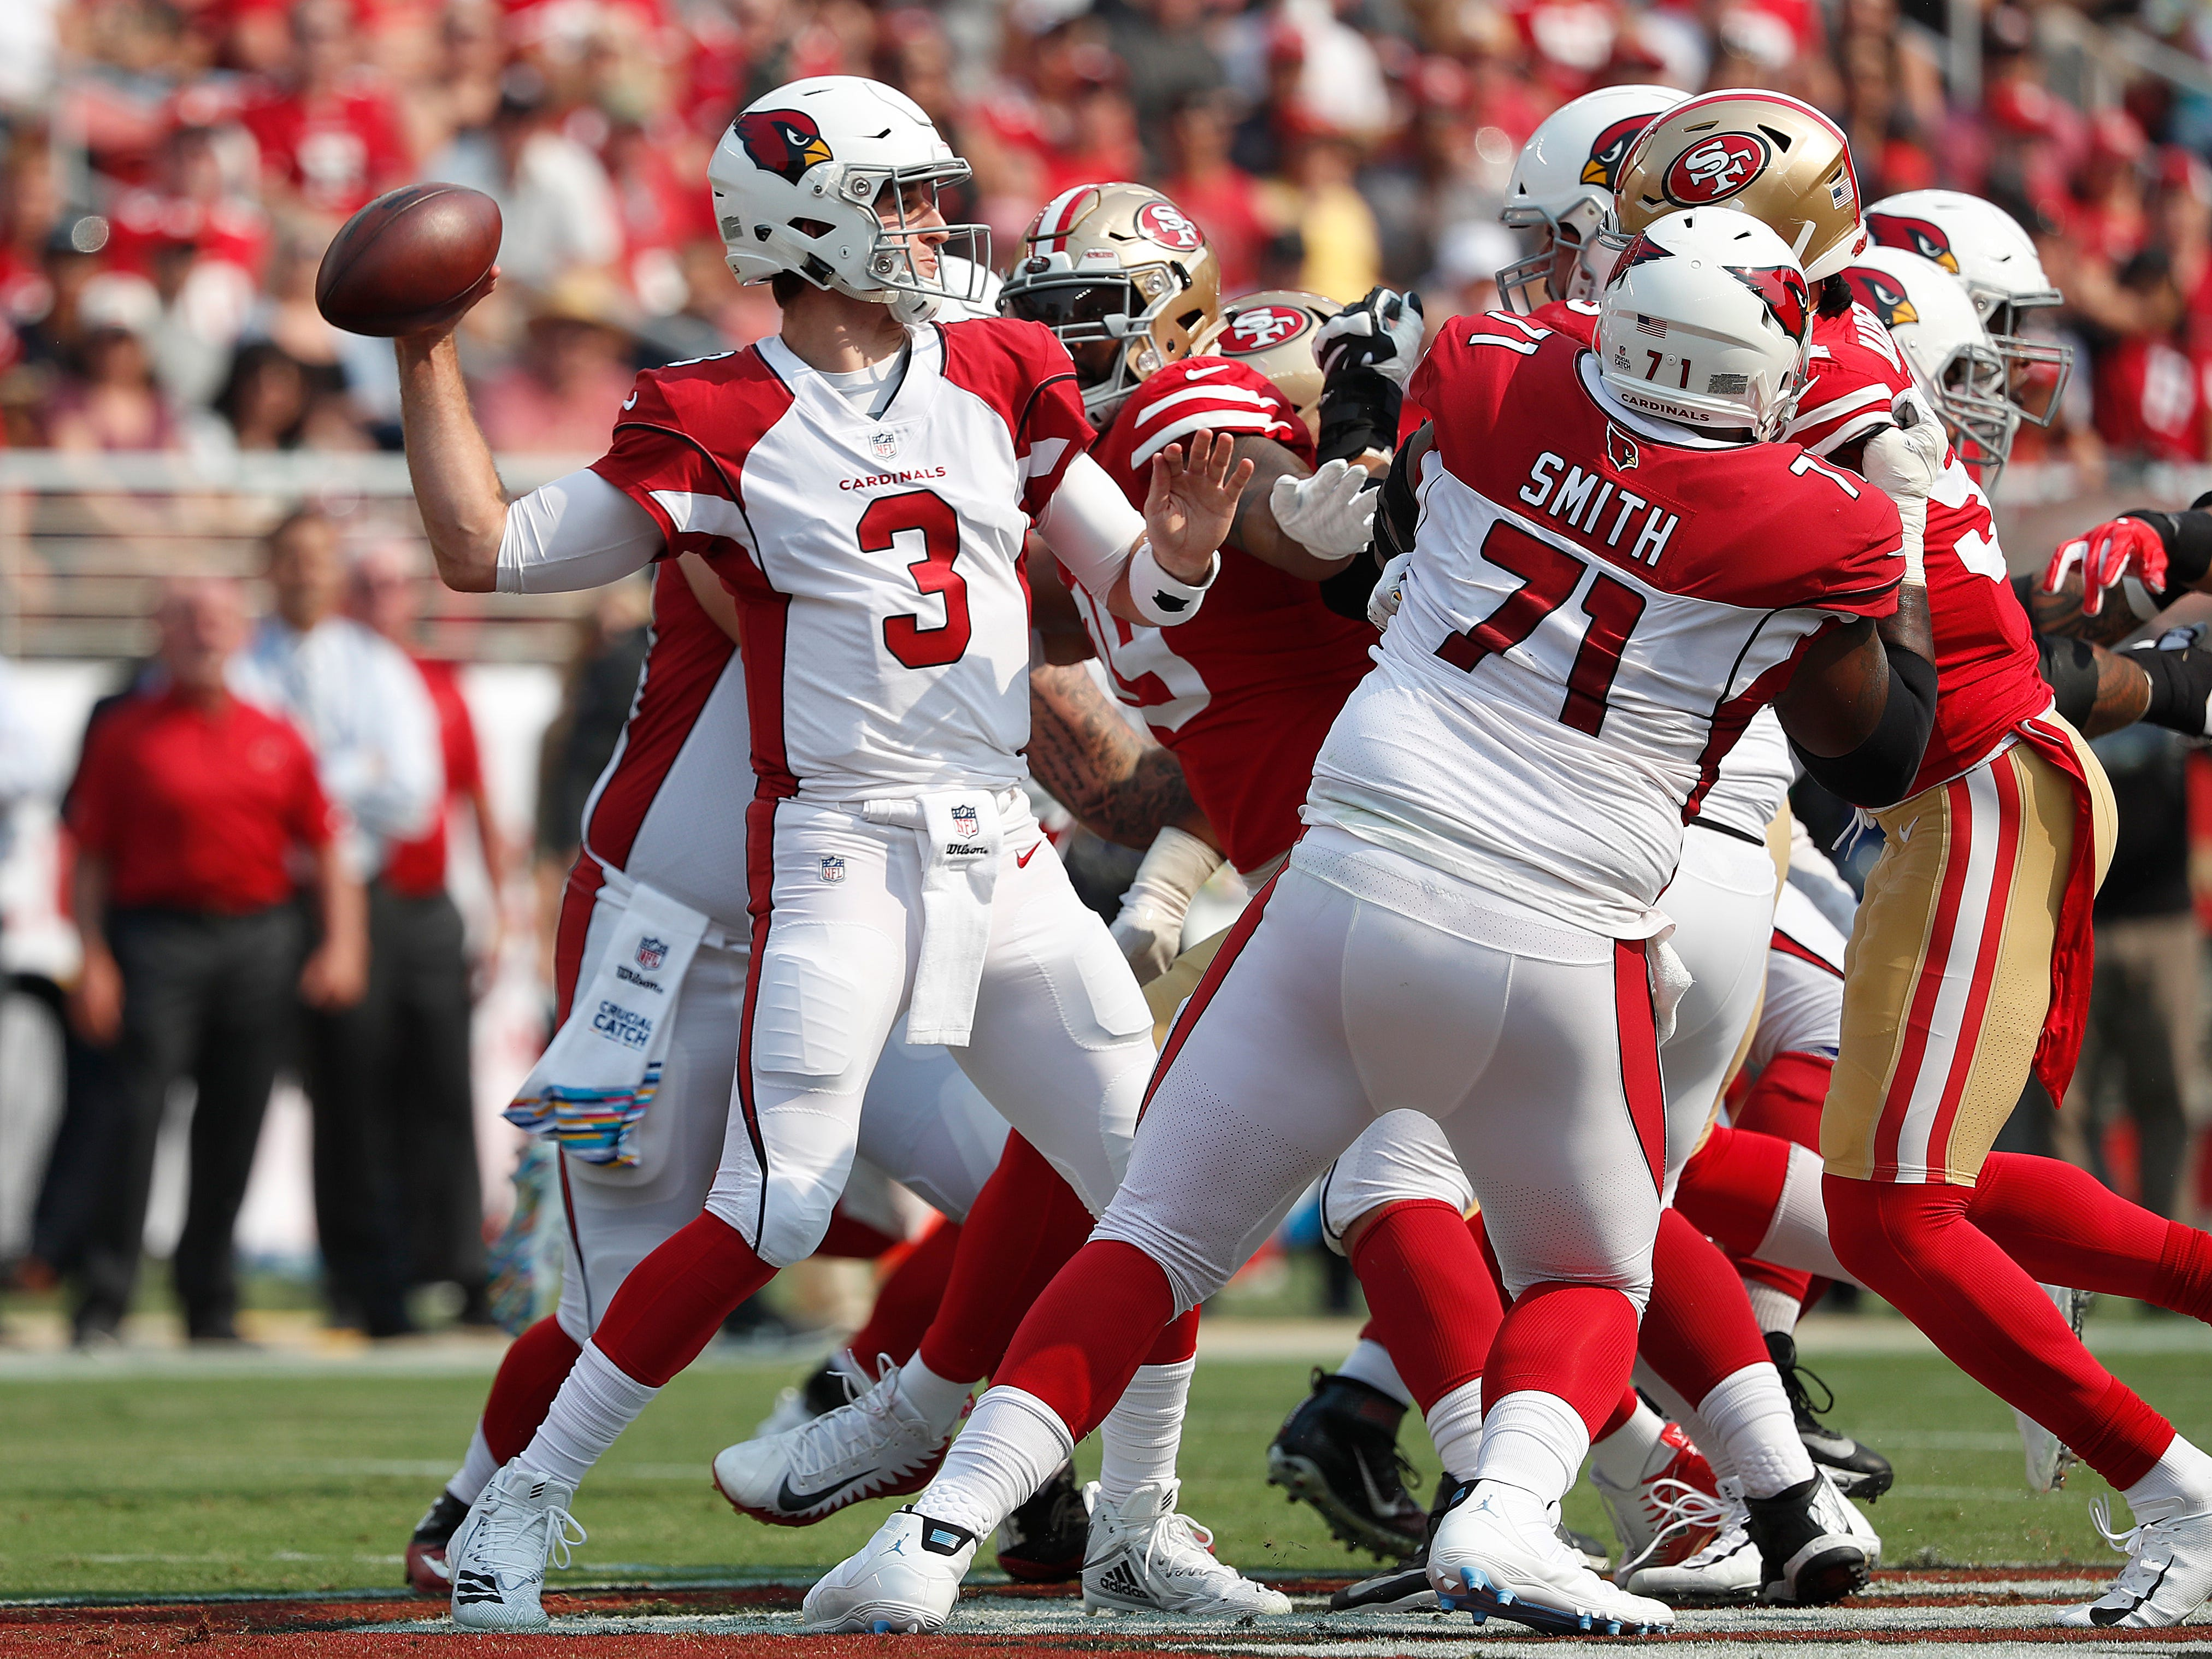 Arizona Cardinals quarterback Josh Rosen (3) passes against the San Francisco 49ers during the first half of an NFL football game in Santa Clara, Calif., Sunday, Oct. 7, 2018.